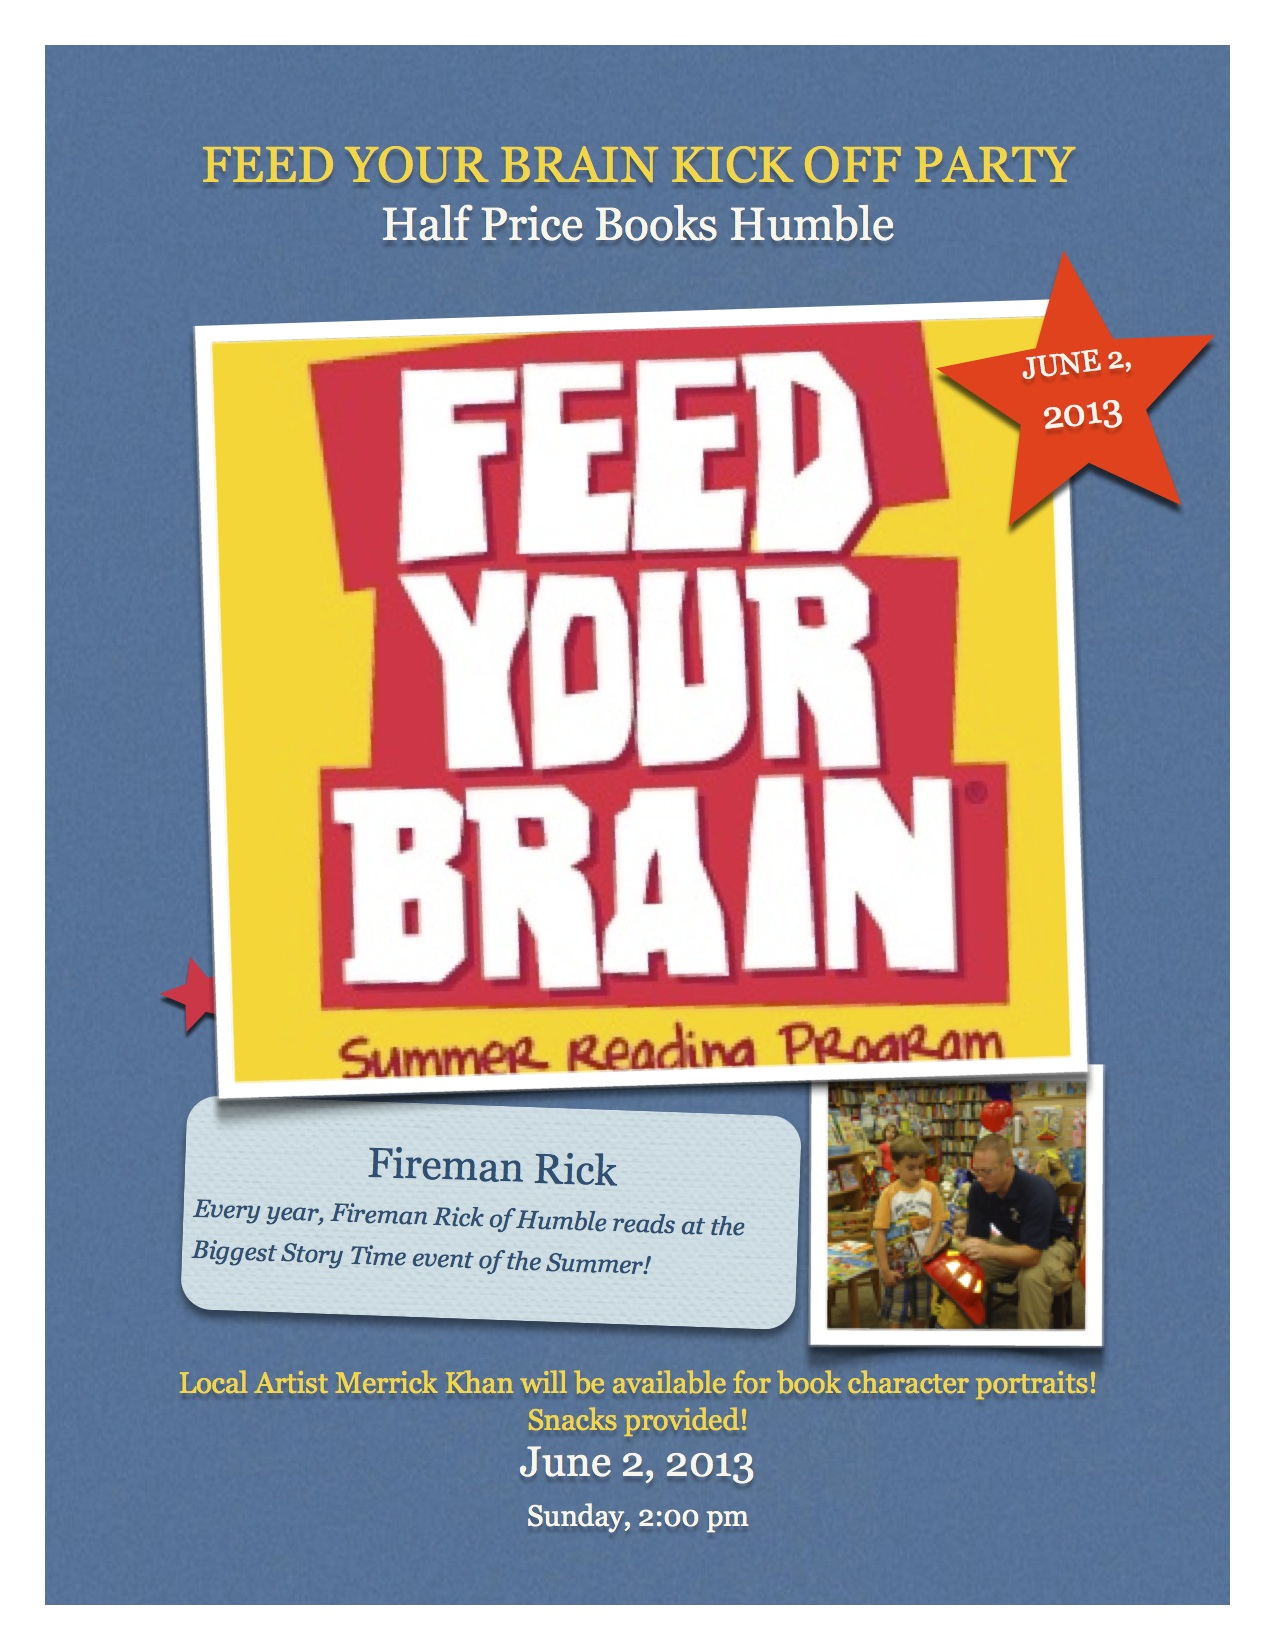 Feed Your Brain 2013 Humble